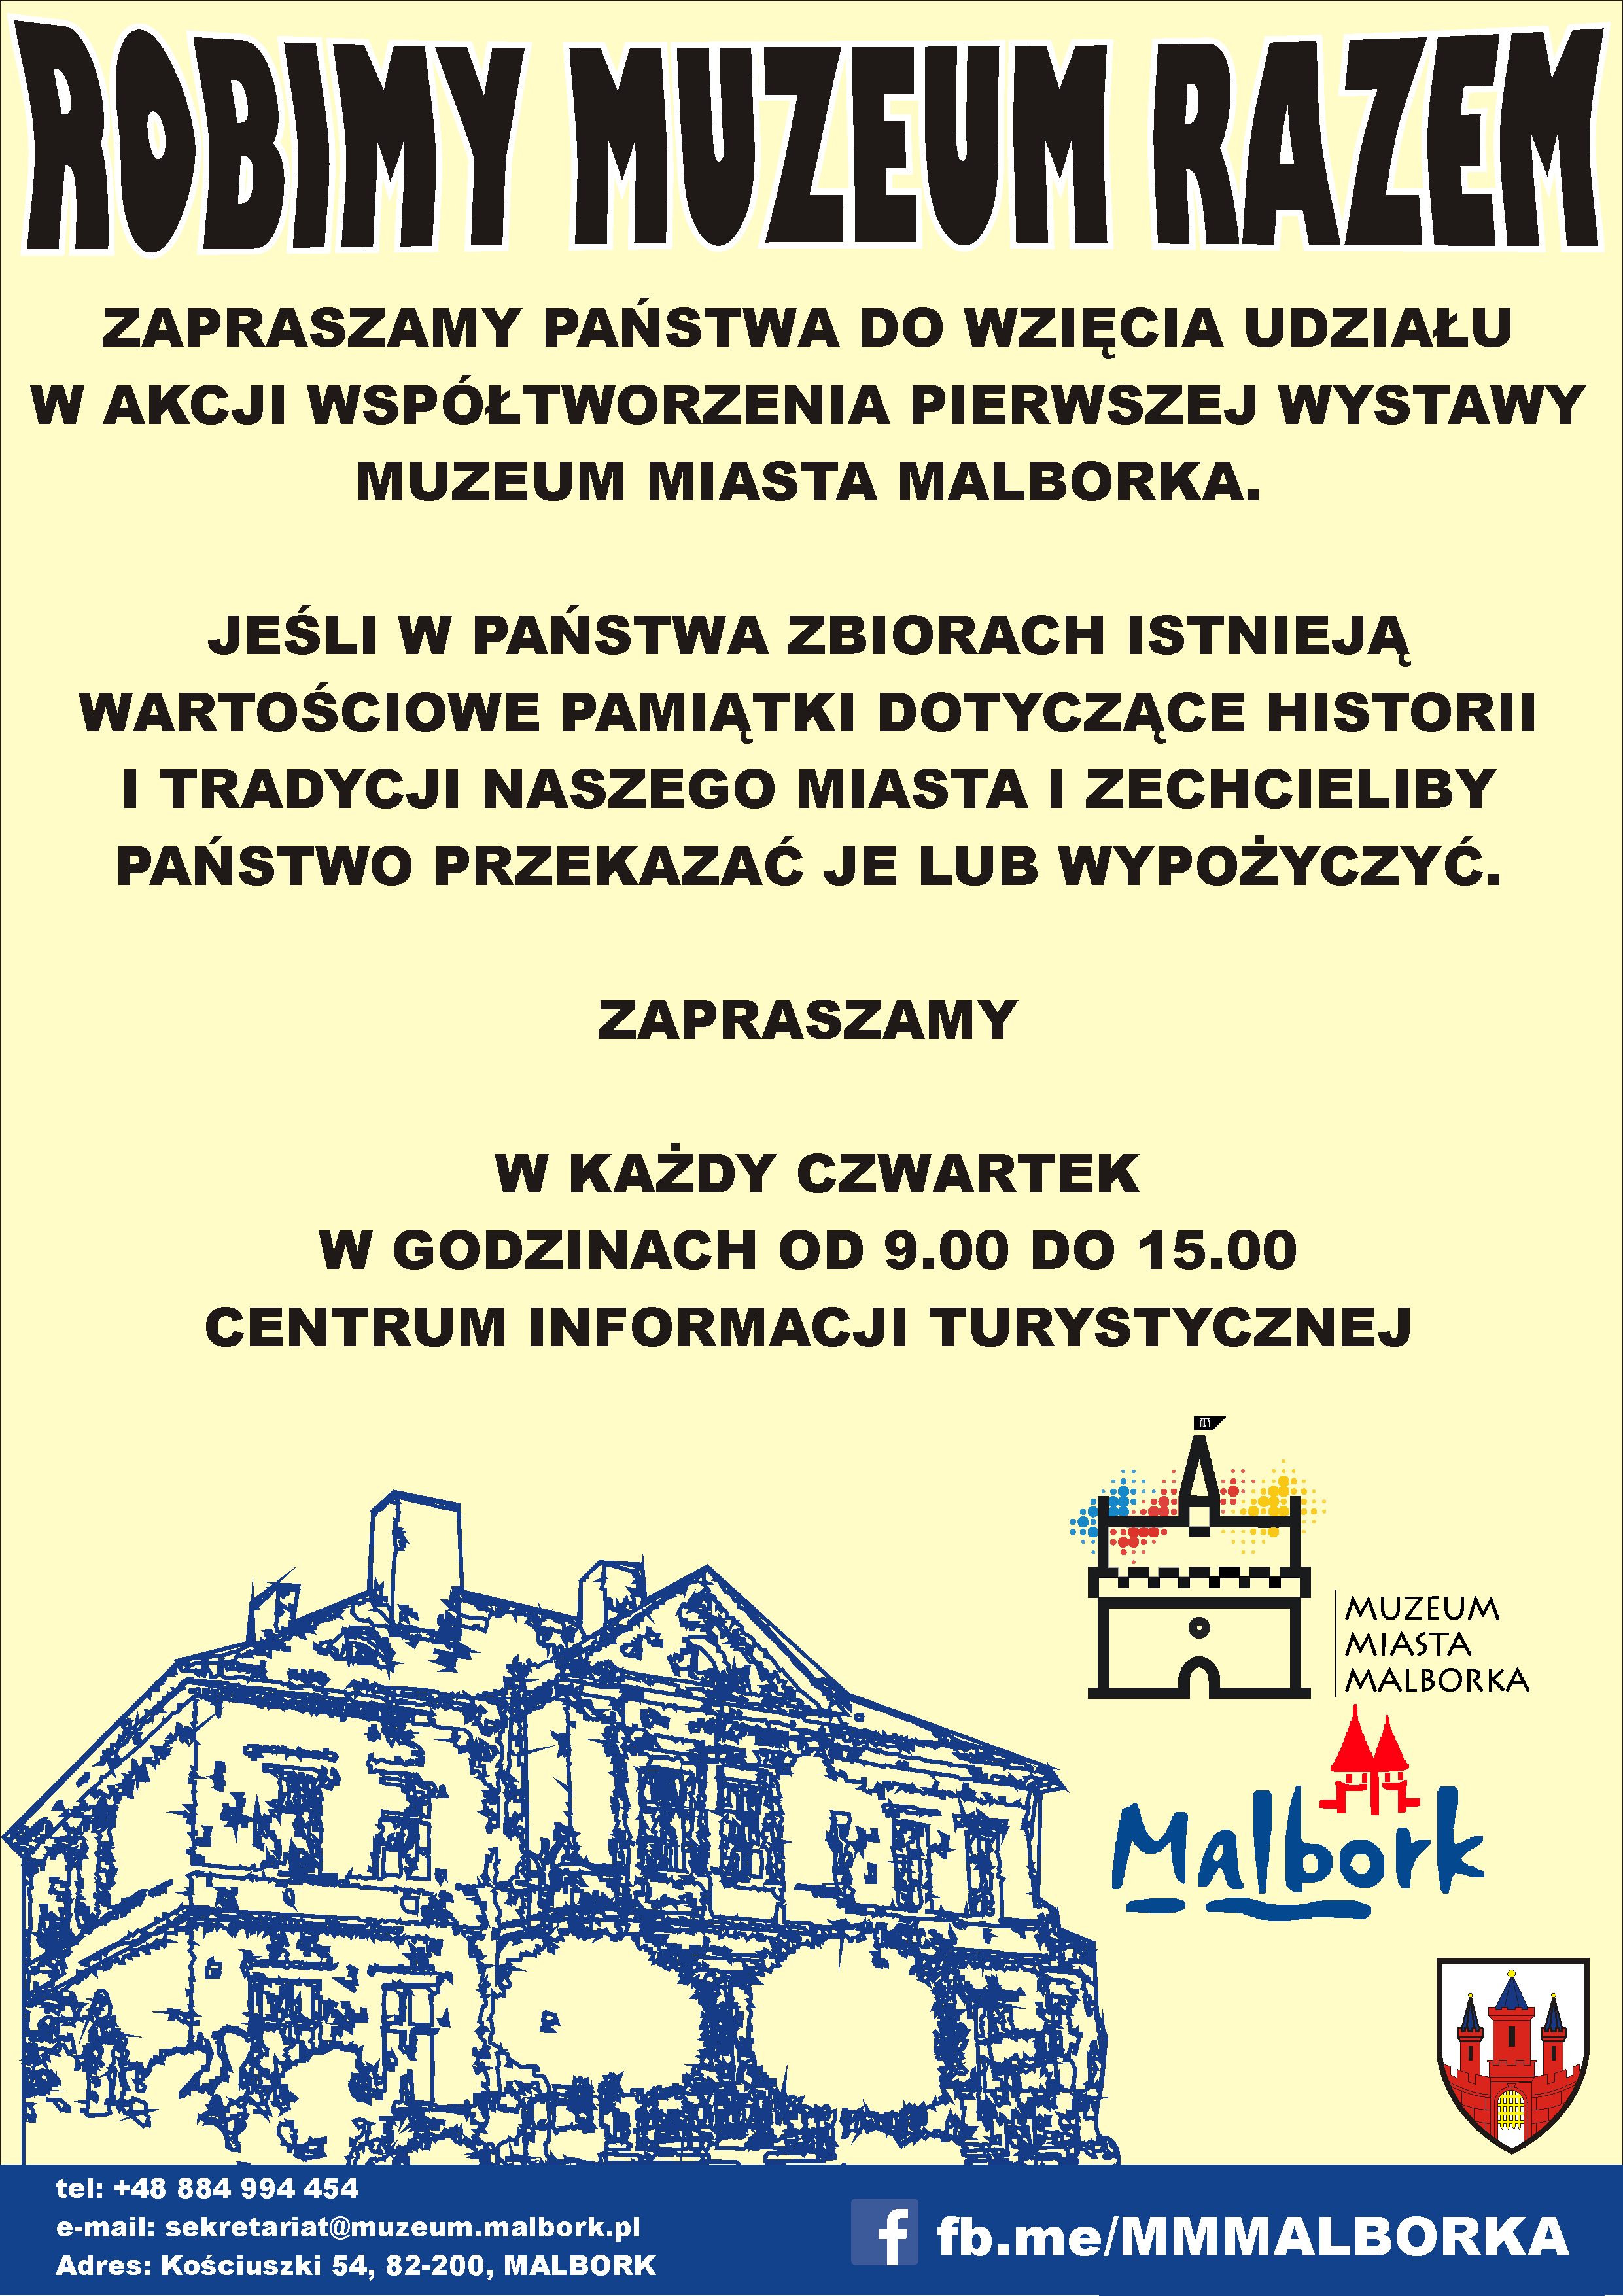 http://m.82-200.pl/2018/03/orig/robimy-muzeum-2664.png